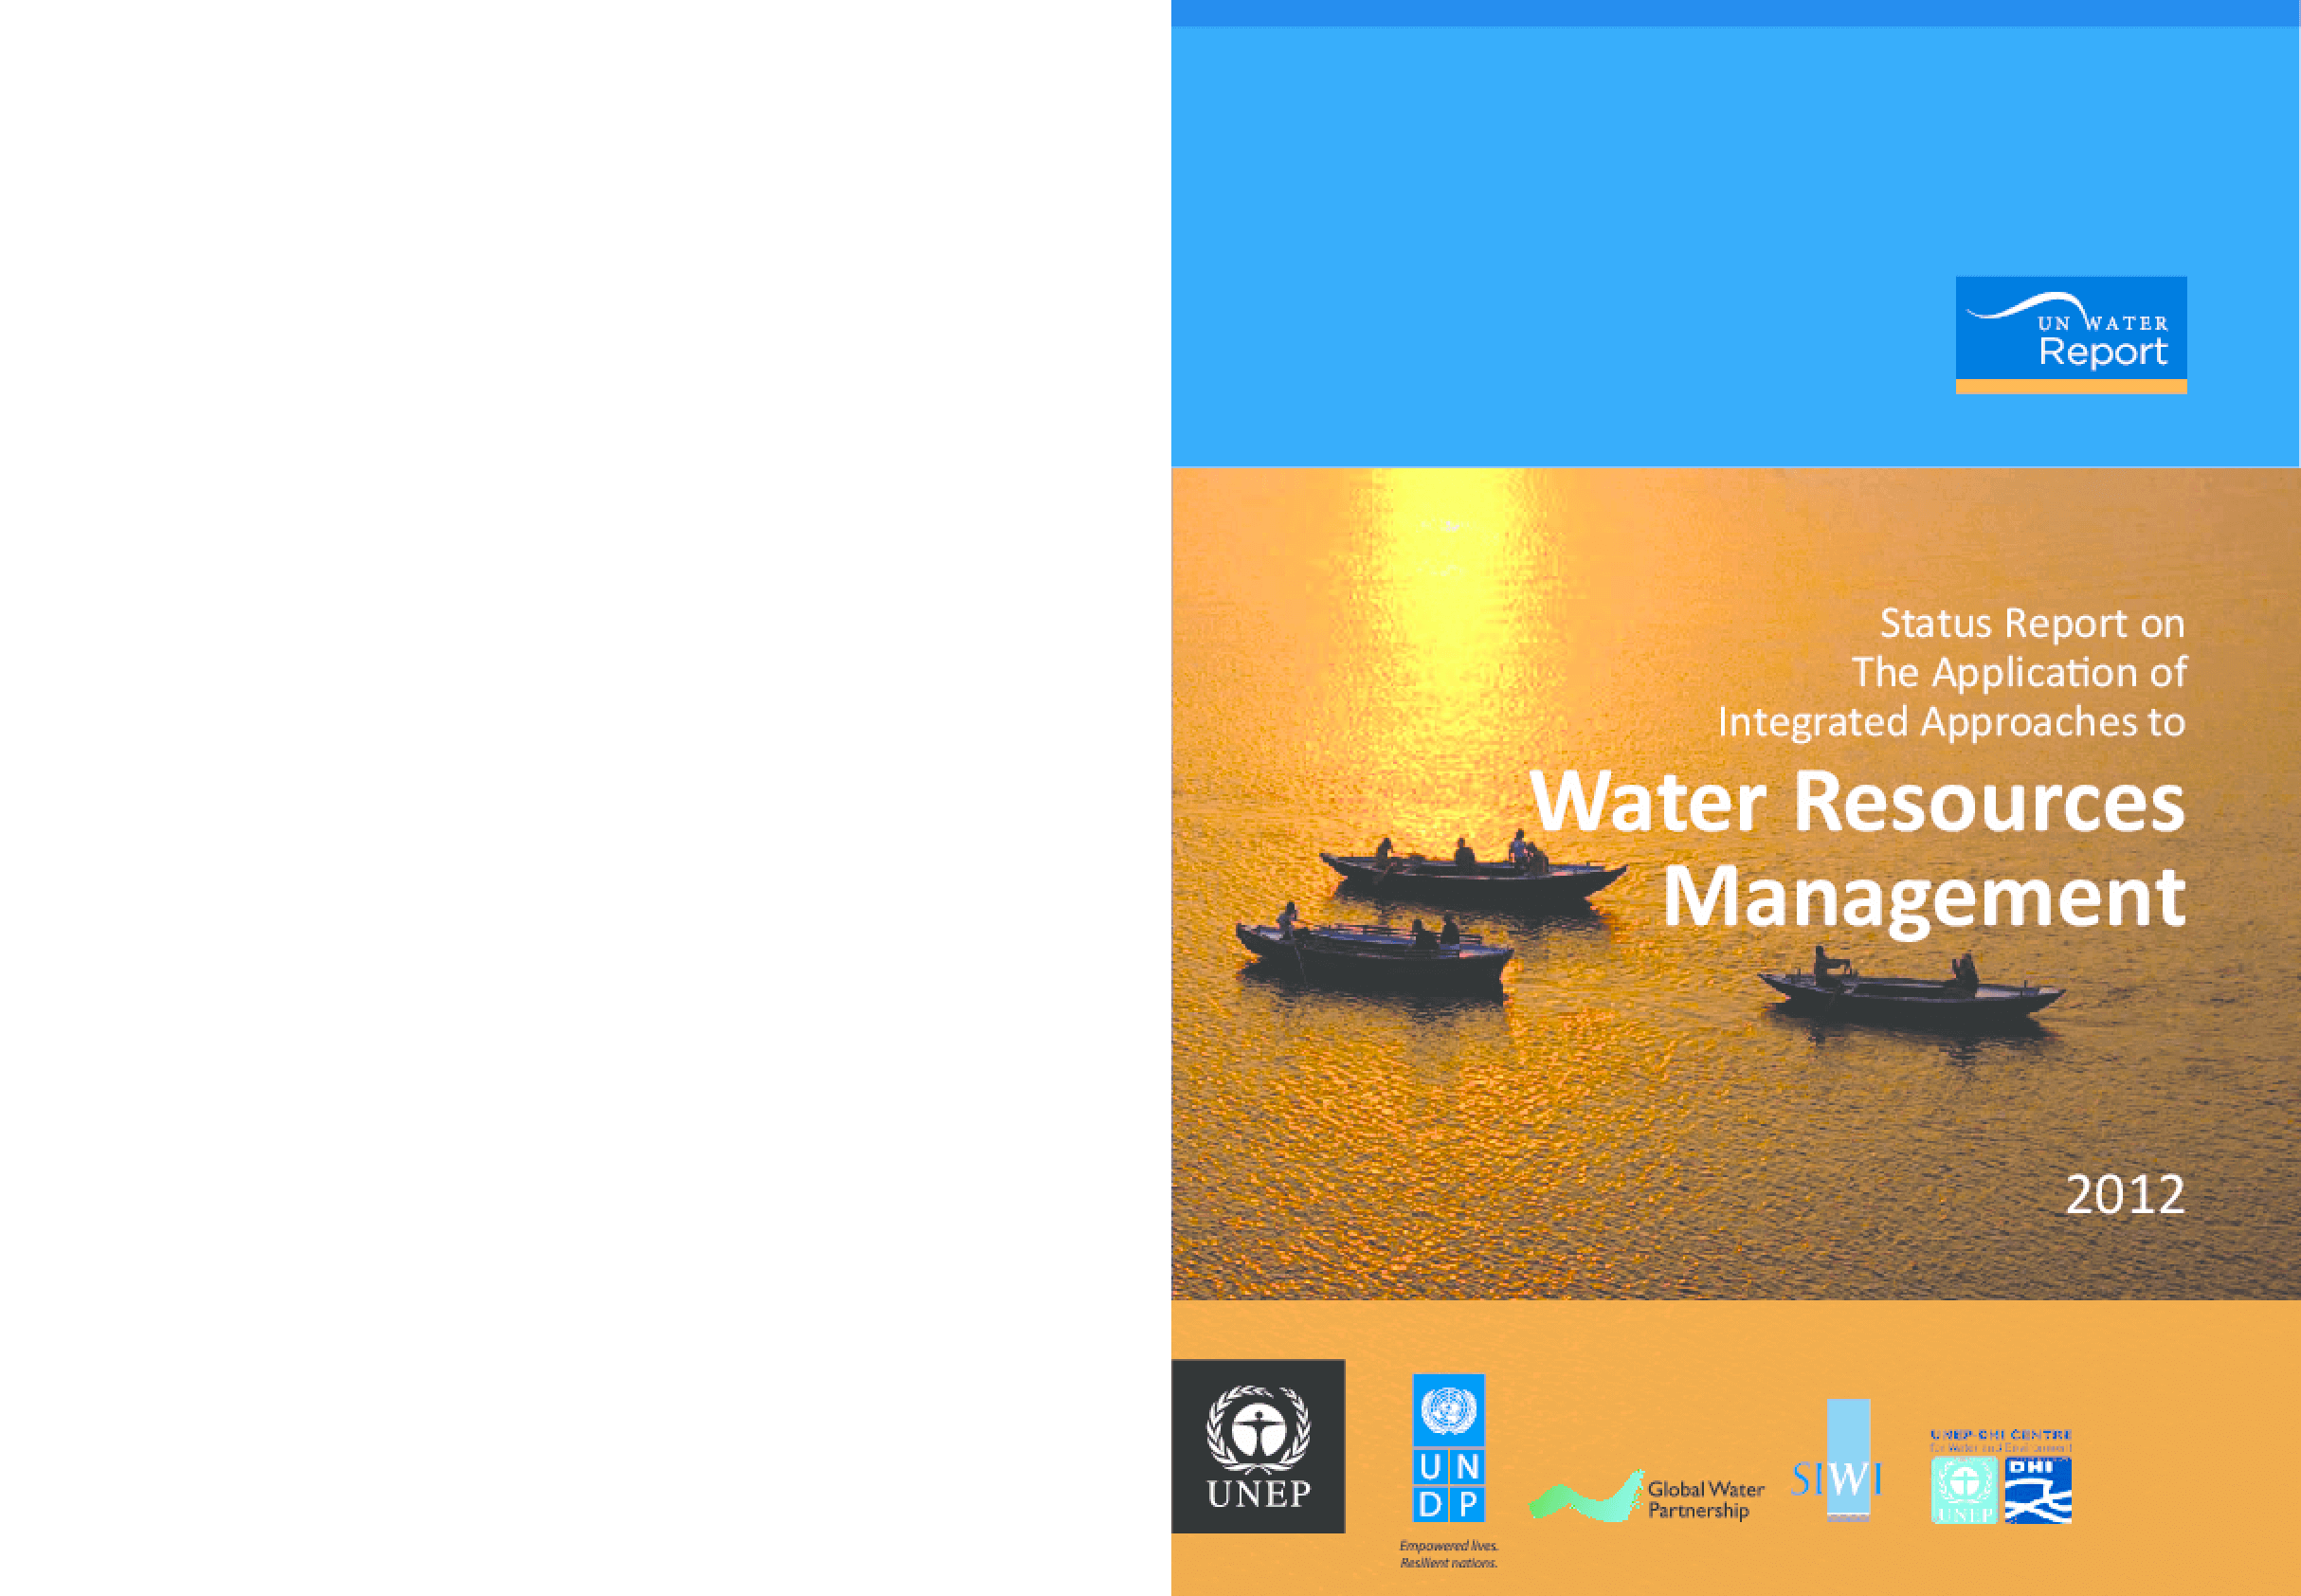 Status Report on the Application of Integrated Approaches to Water Resources Management 2012